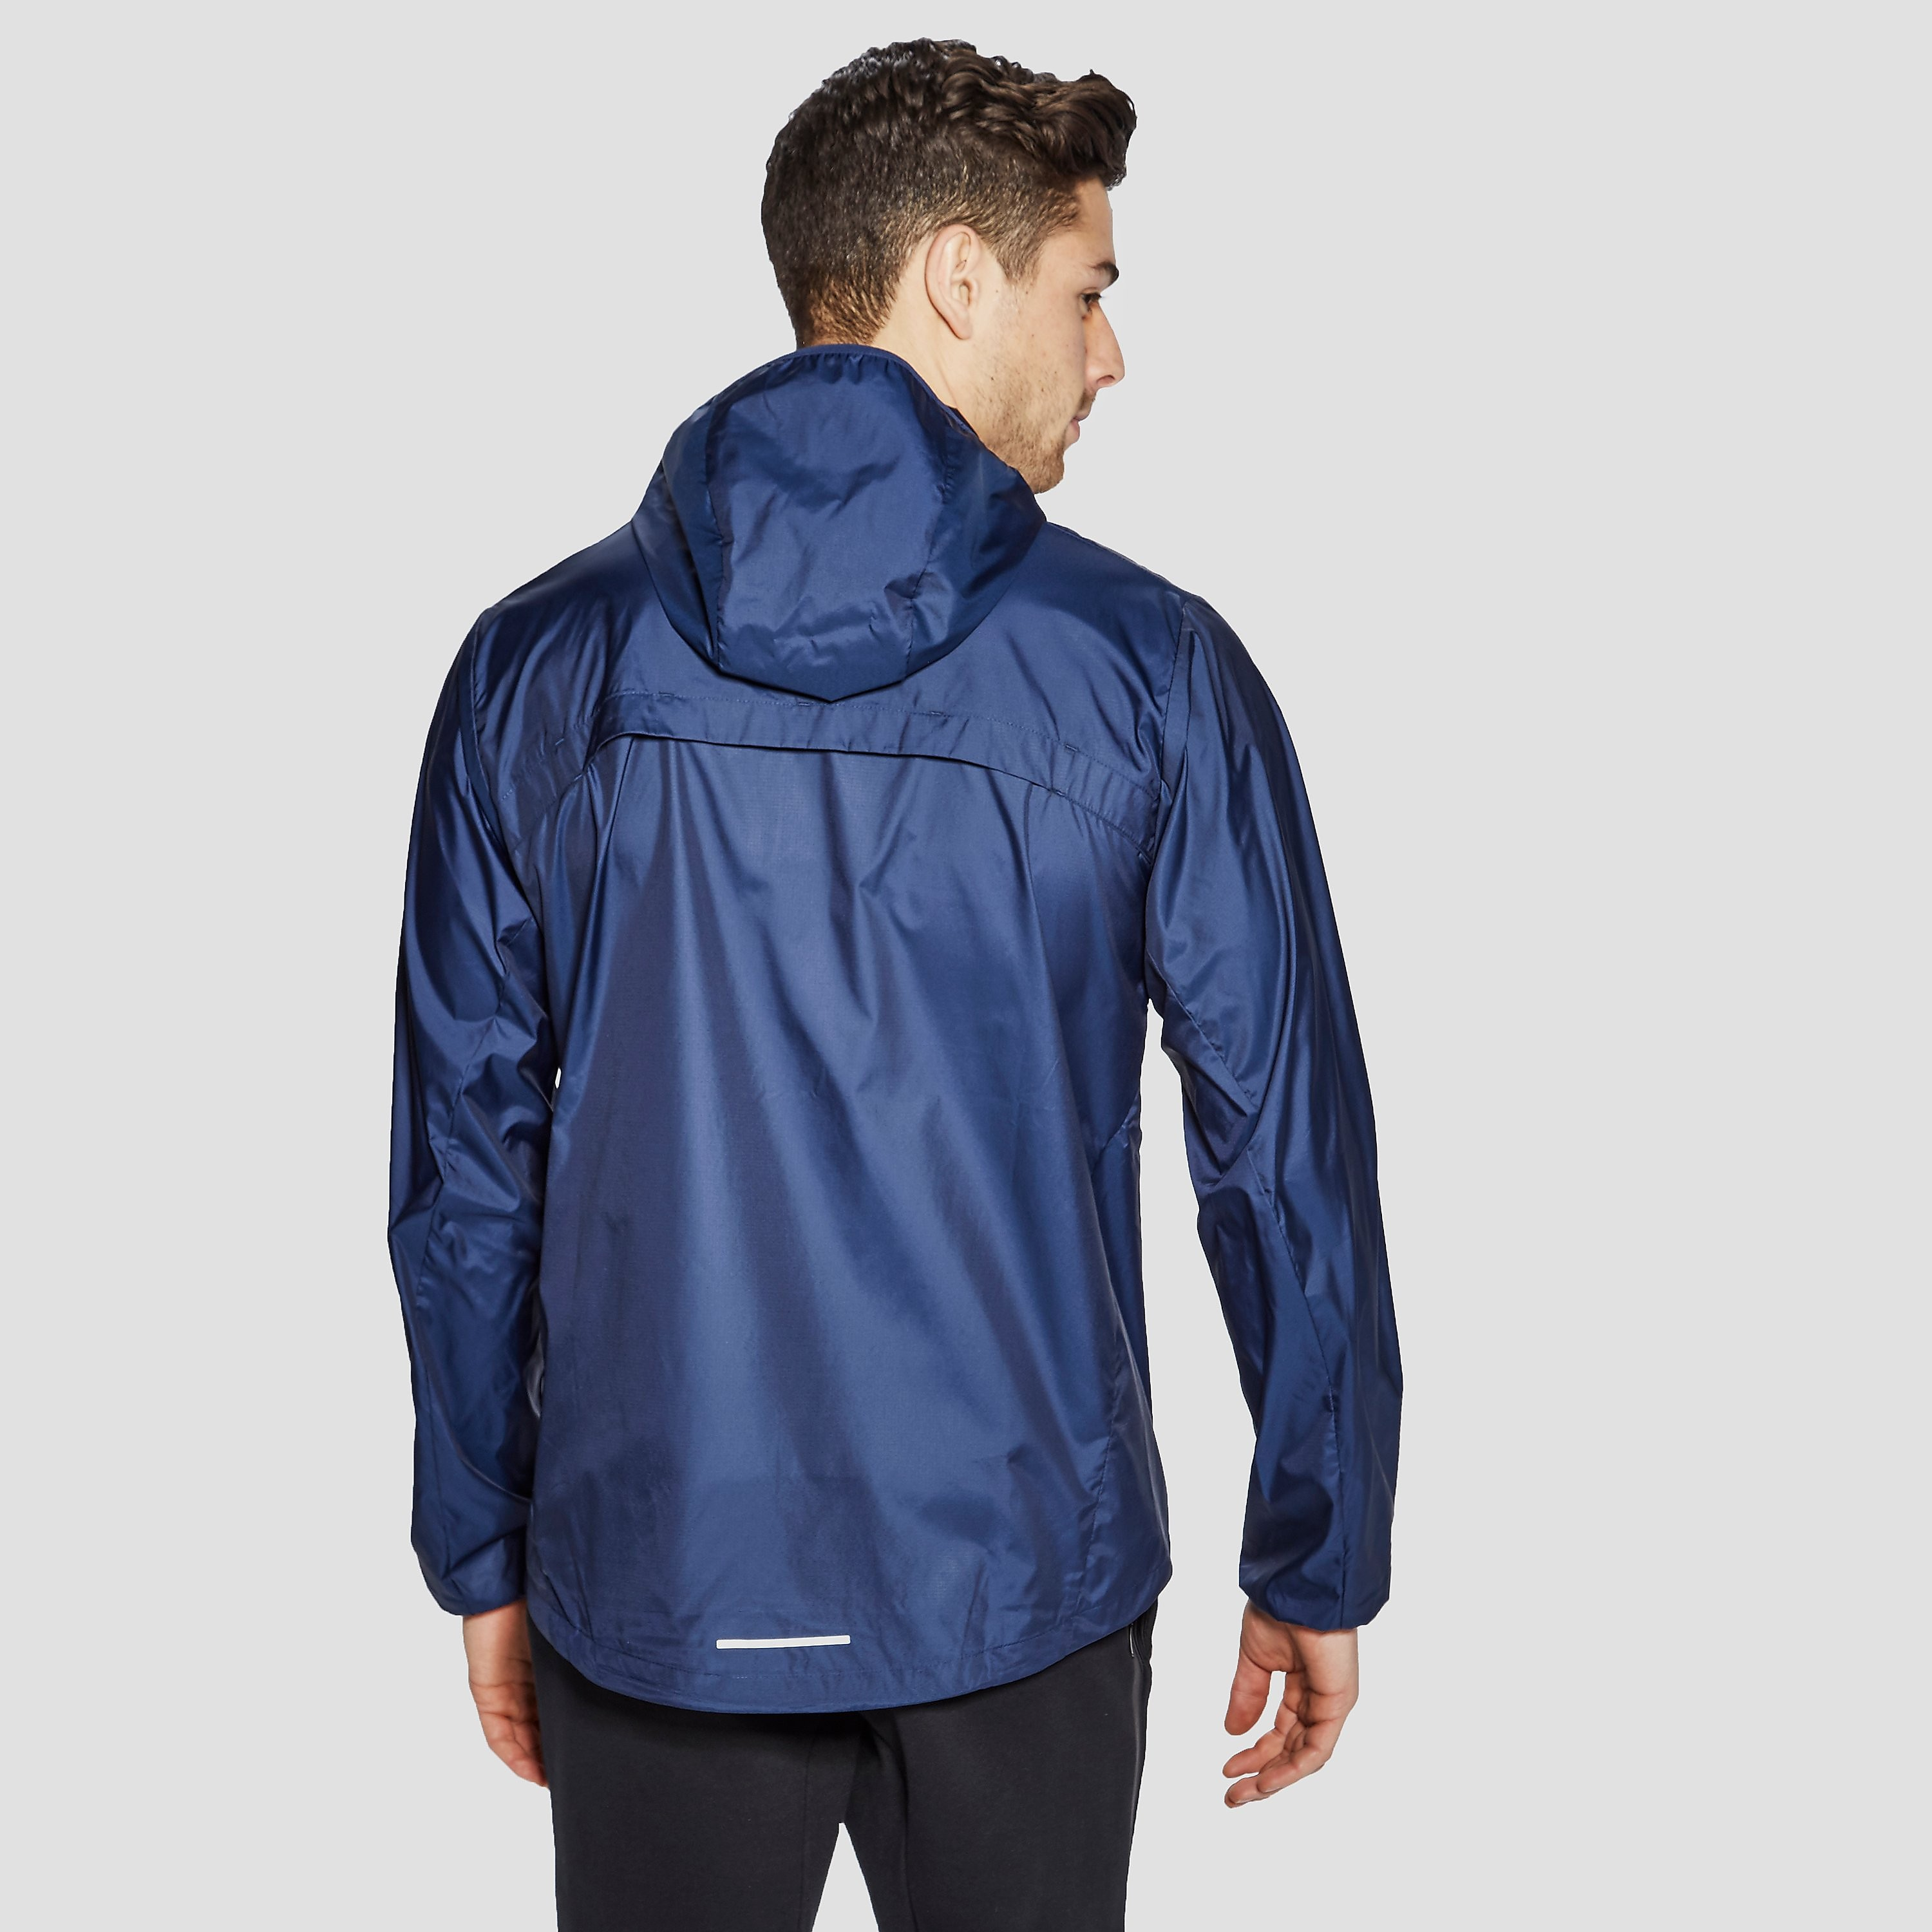 Nike Shield Racer Men's Jacket